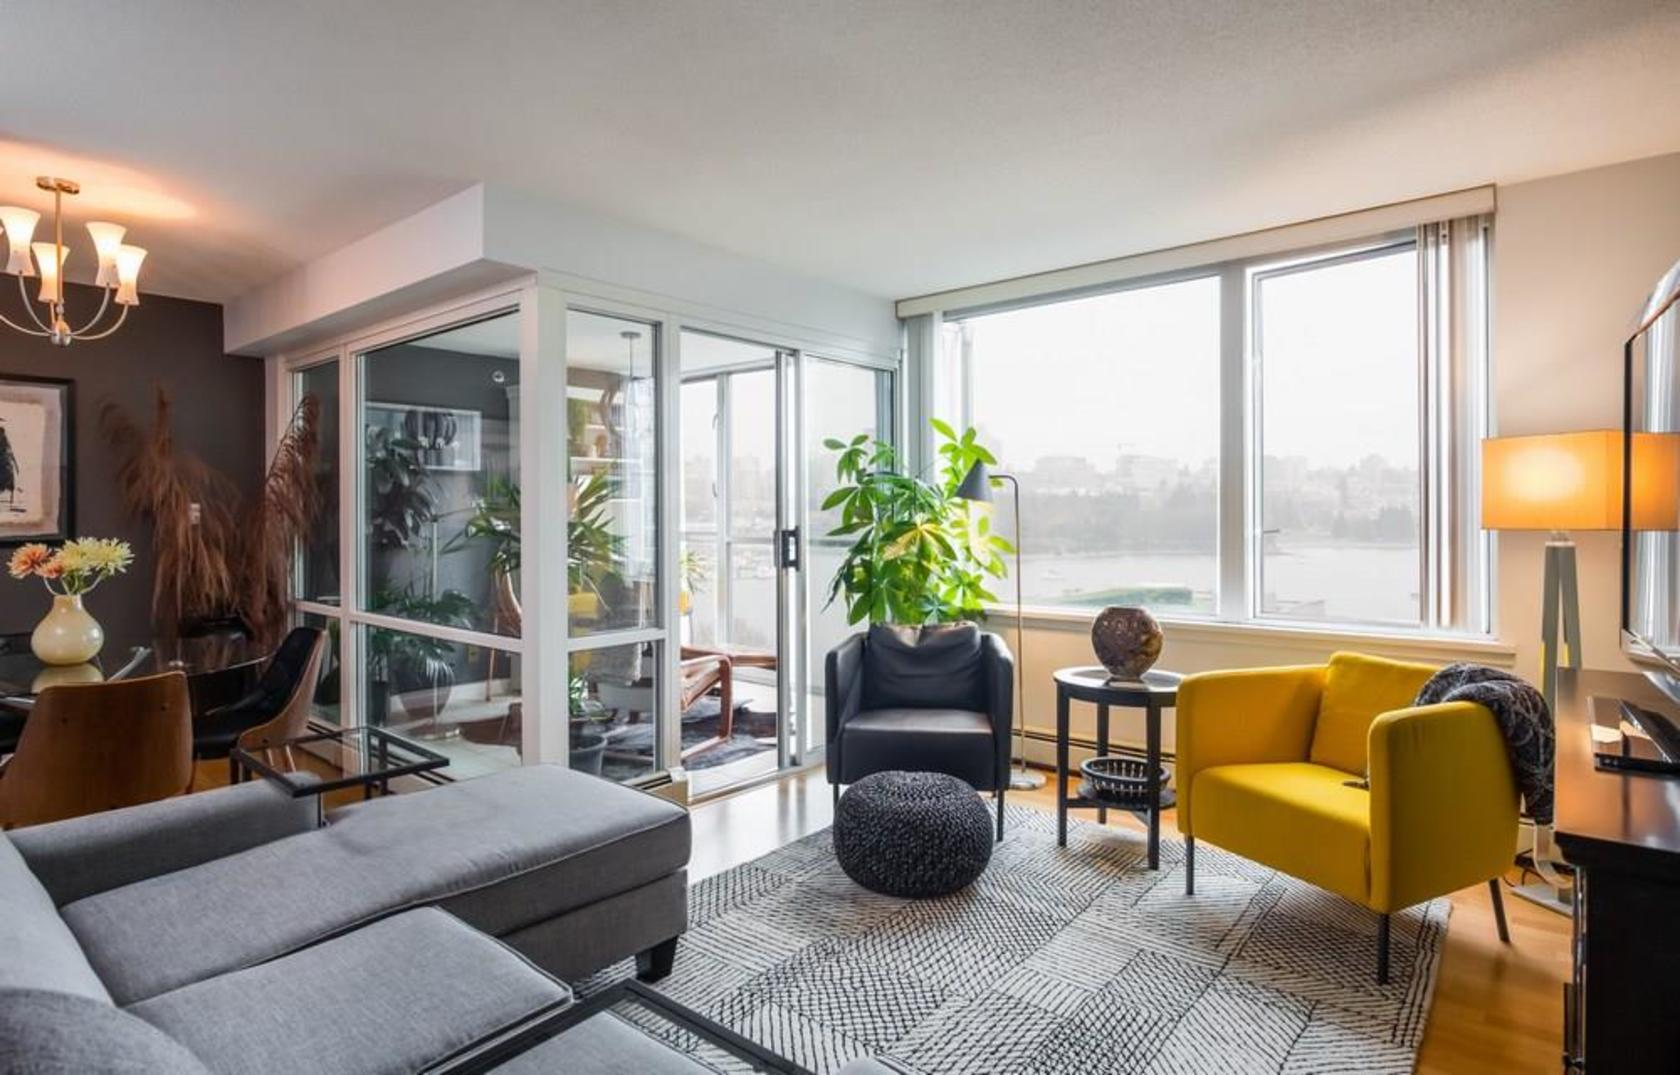 262258306 at 705 - 1288 Marinaside, Yaletown, Vancouver West